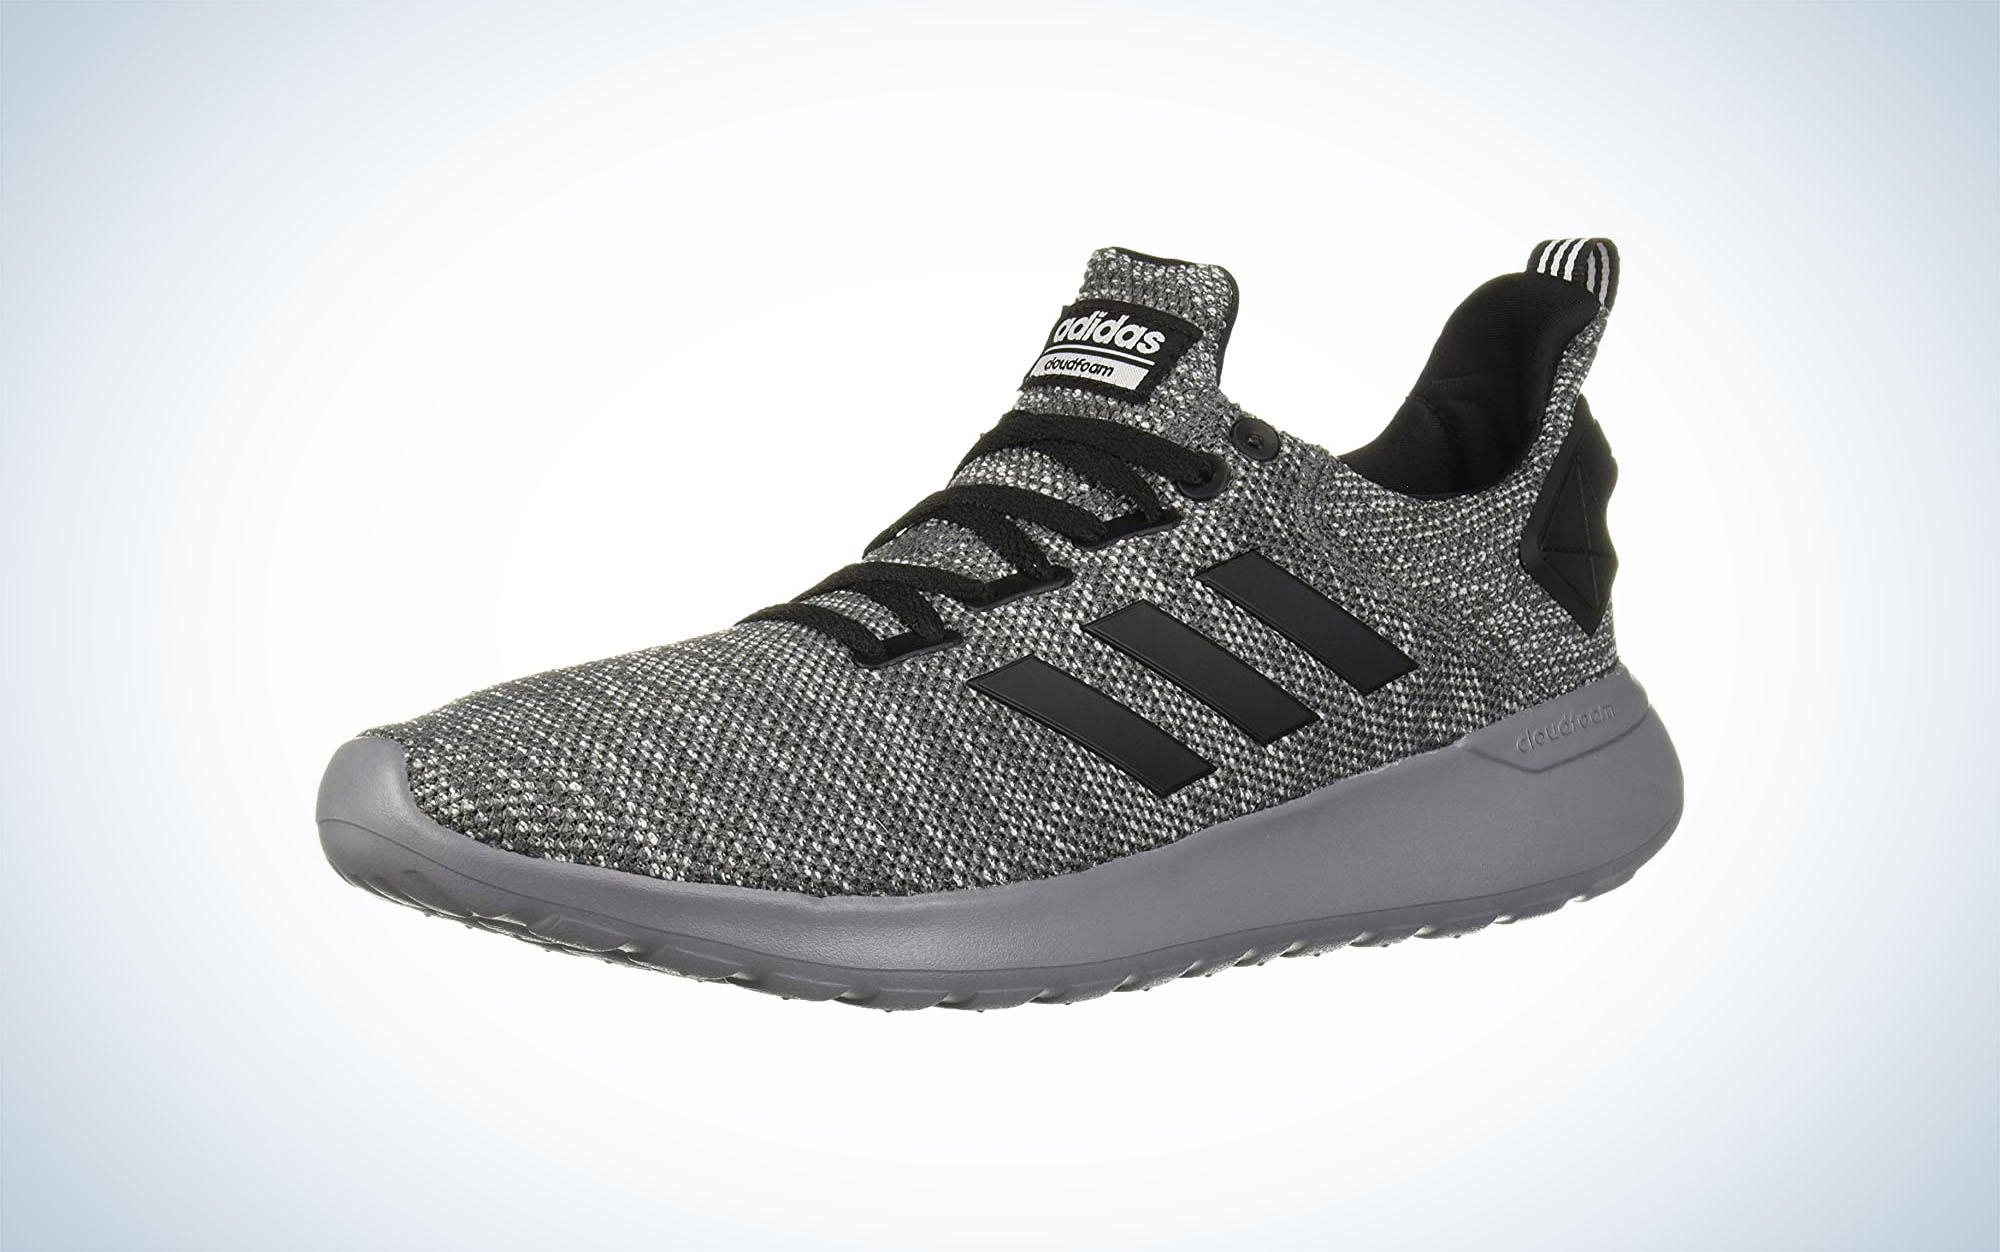 adidas Men's CF Lite Racer Byd are some of the best running shoes for men.